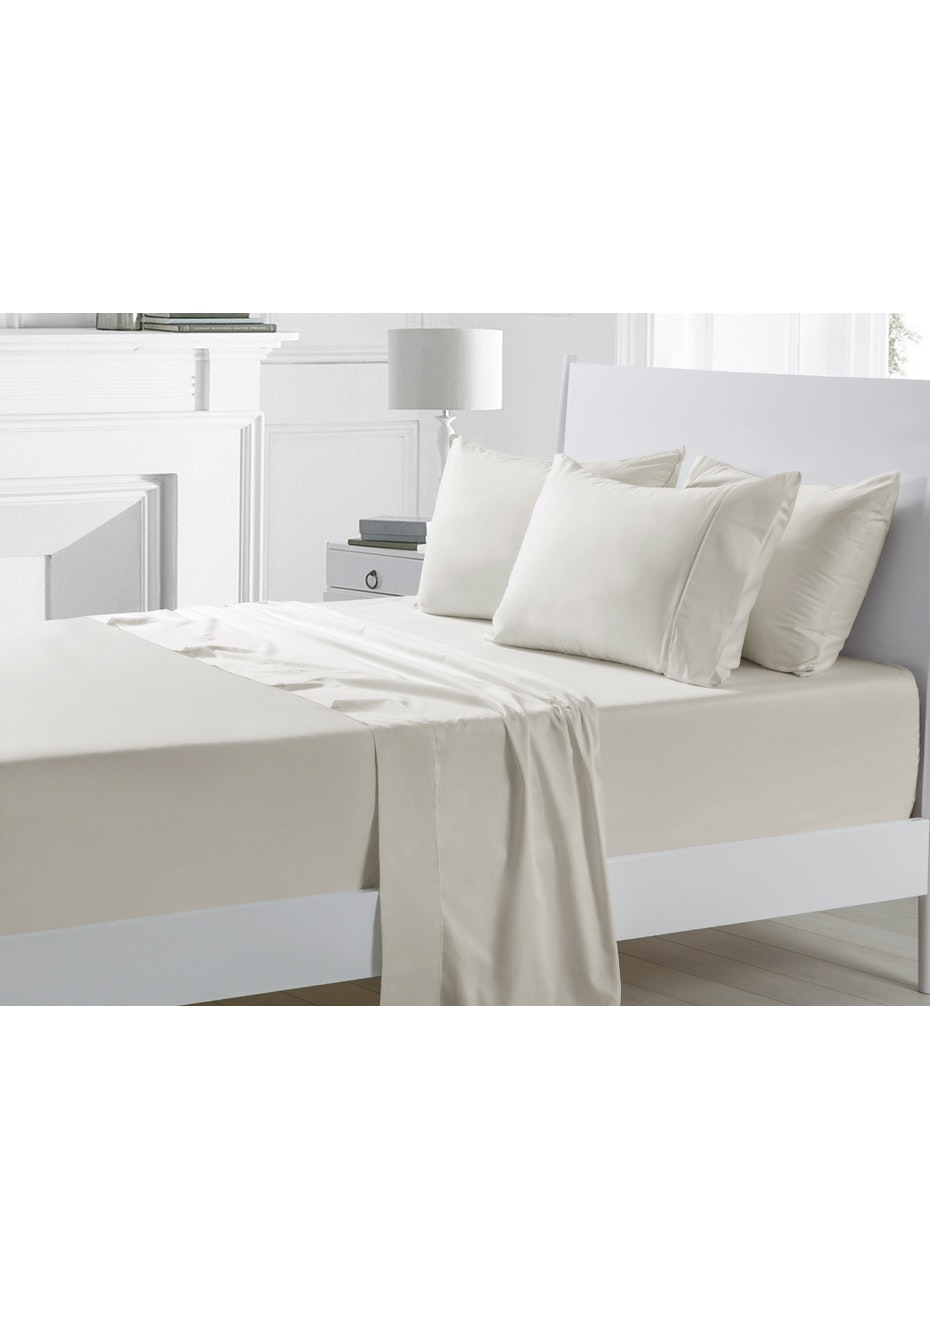 Silver 300TC Cotton Sateen Sheet Set - Queen Bed